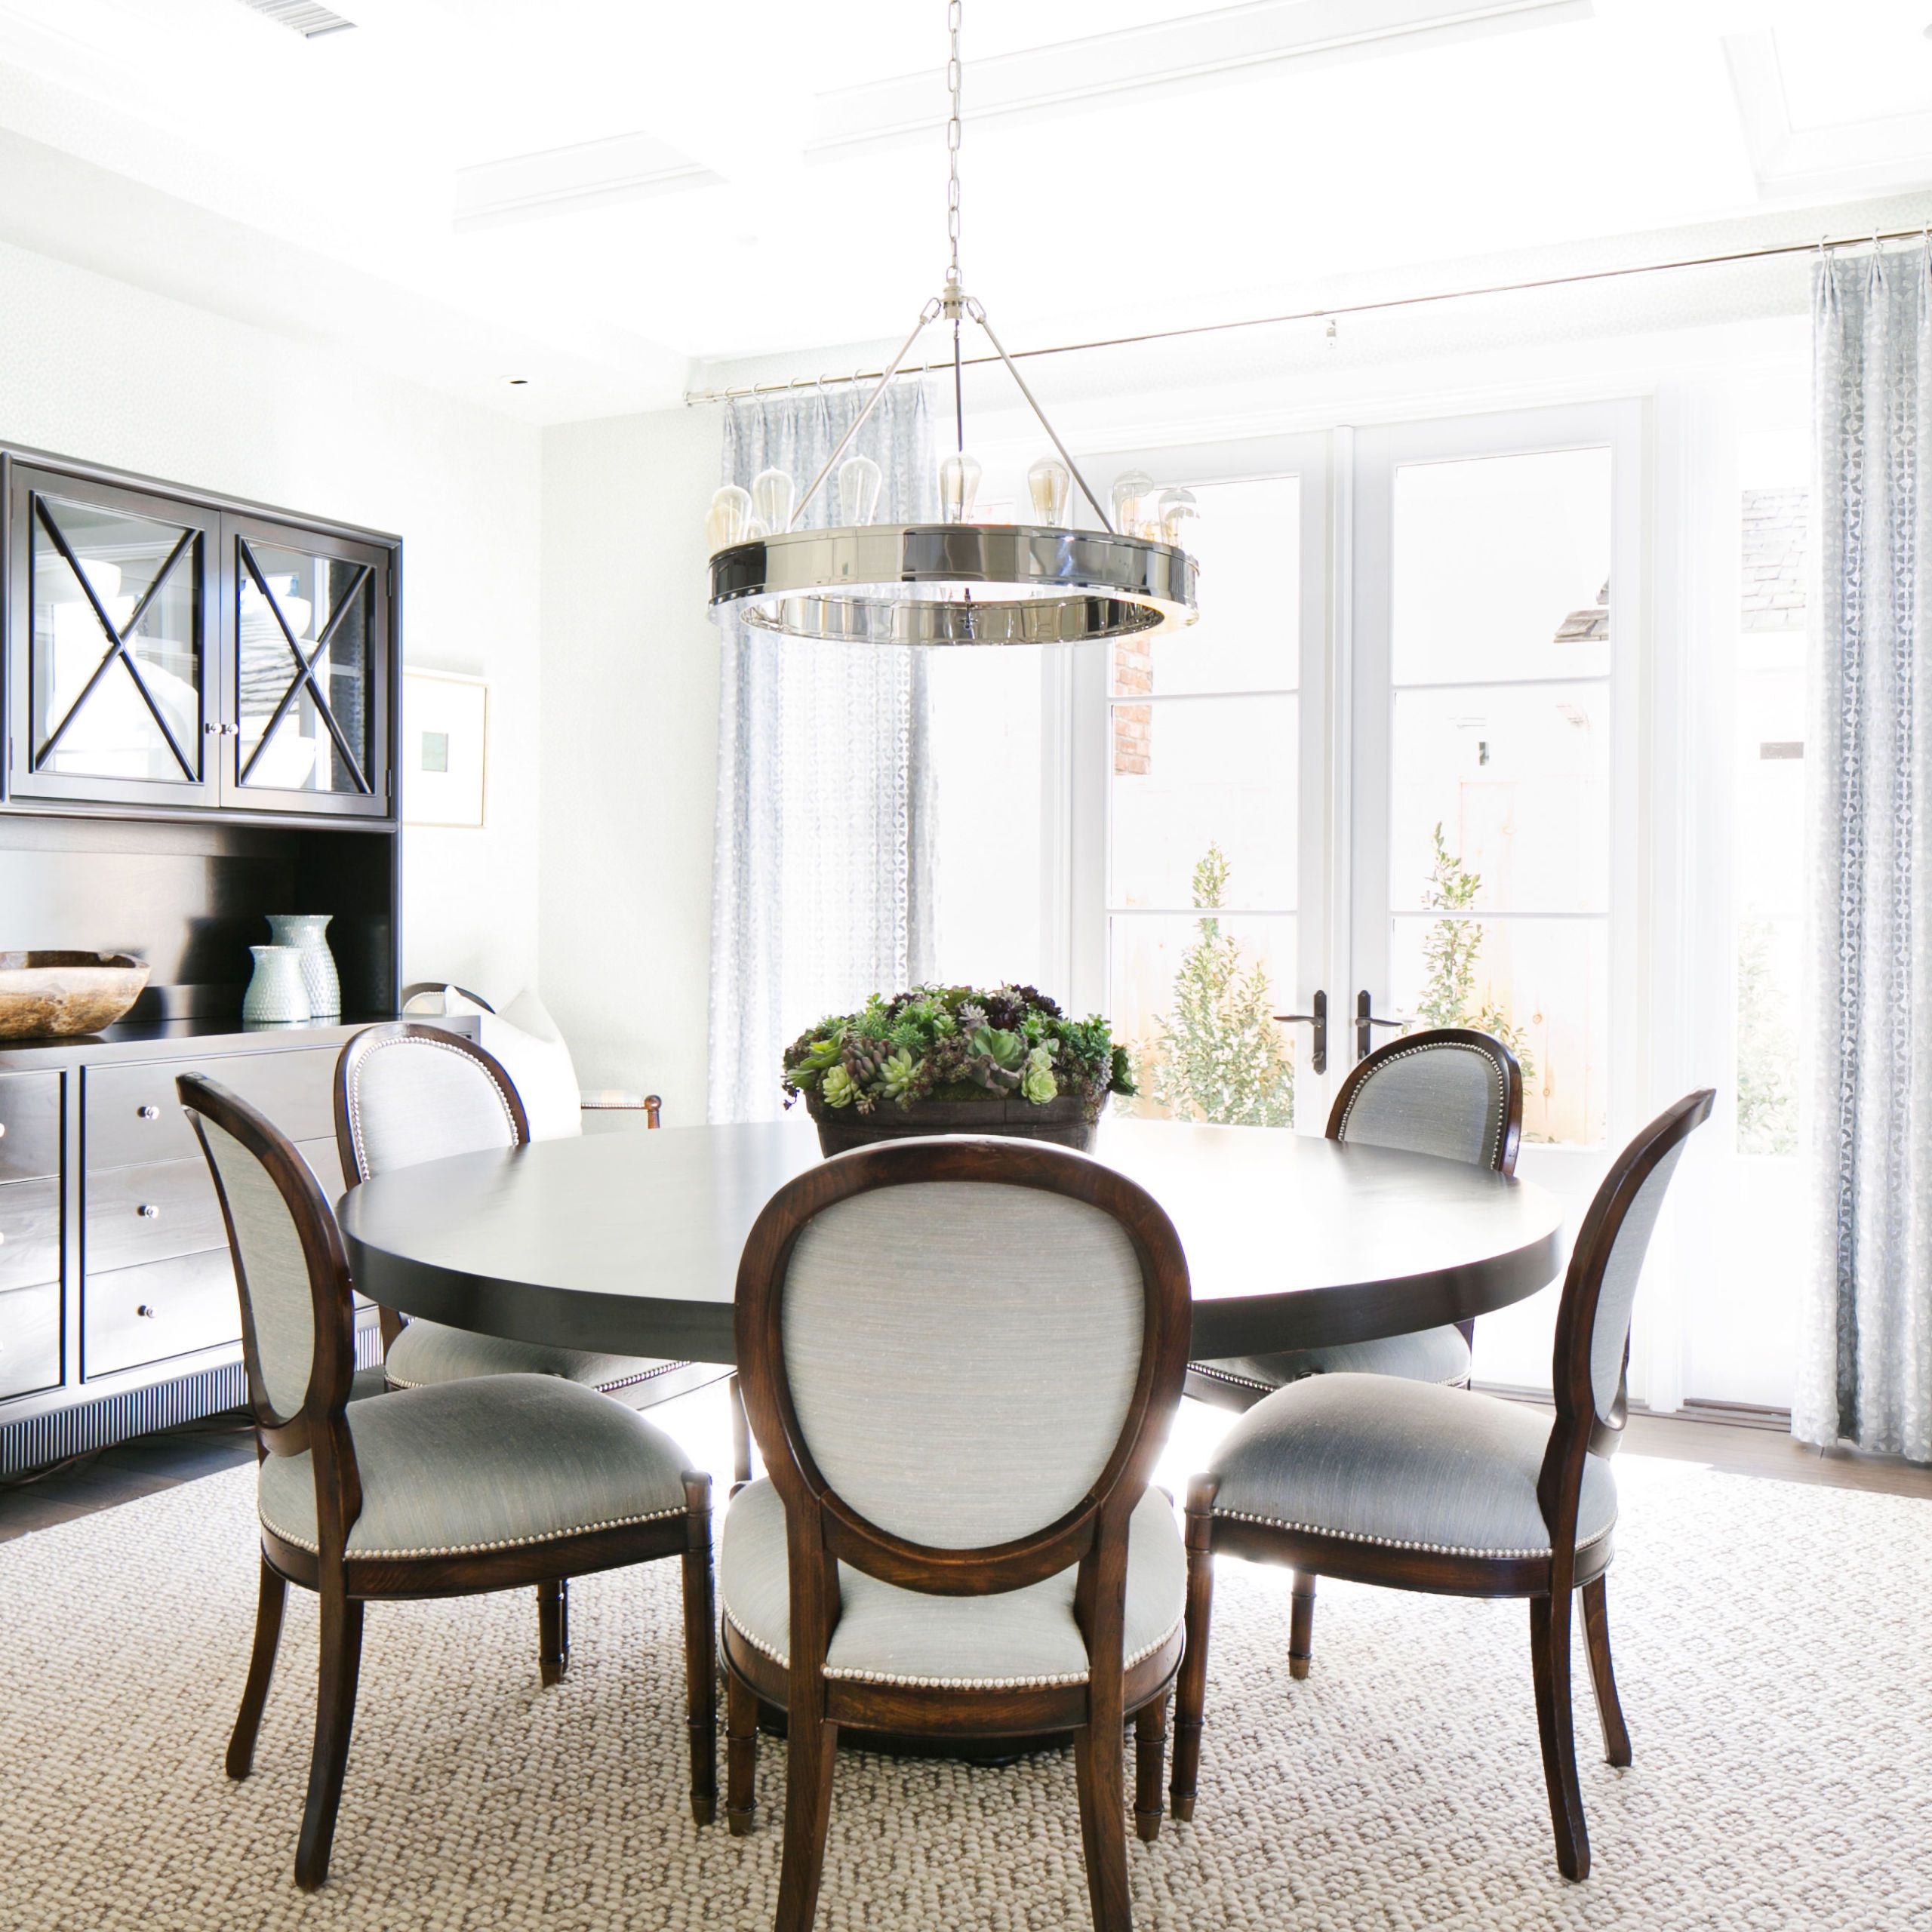 round dining table image NLFULDS